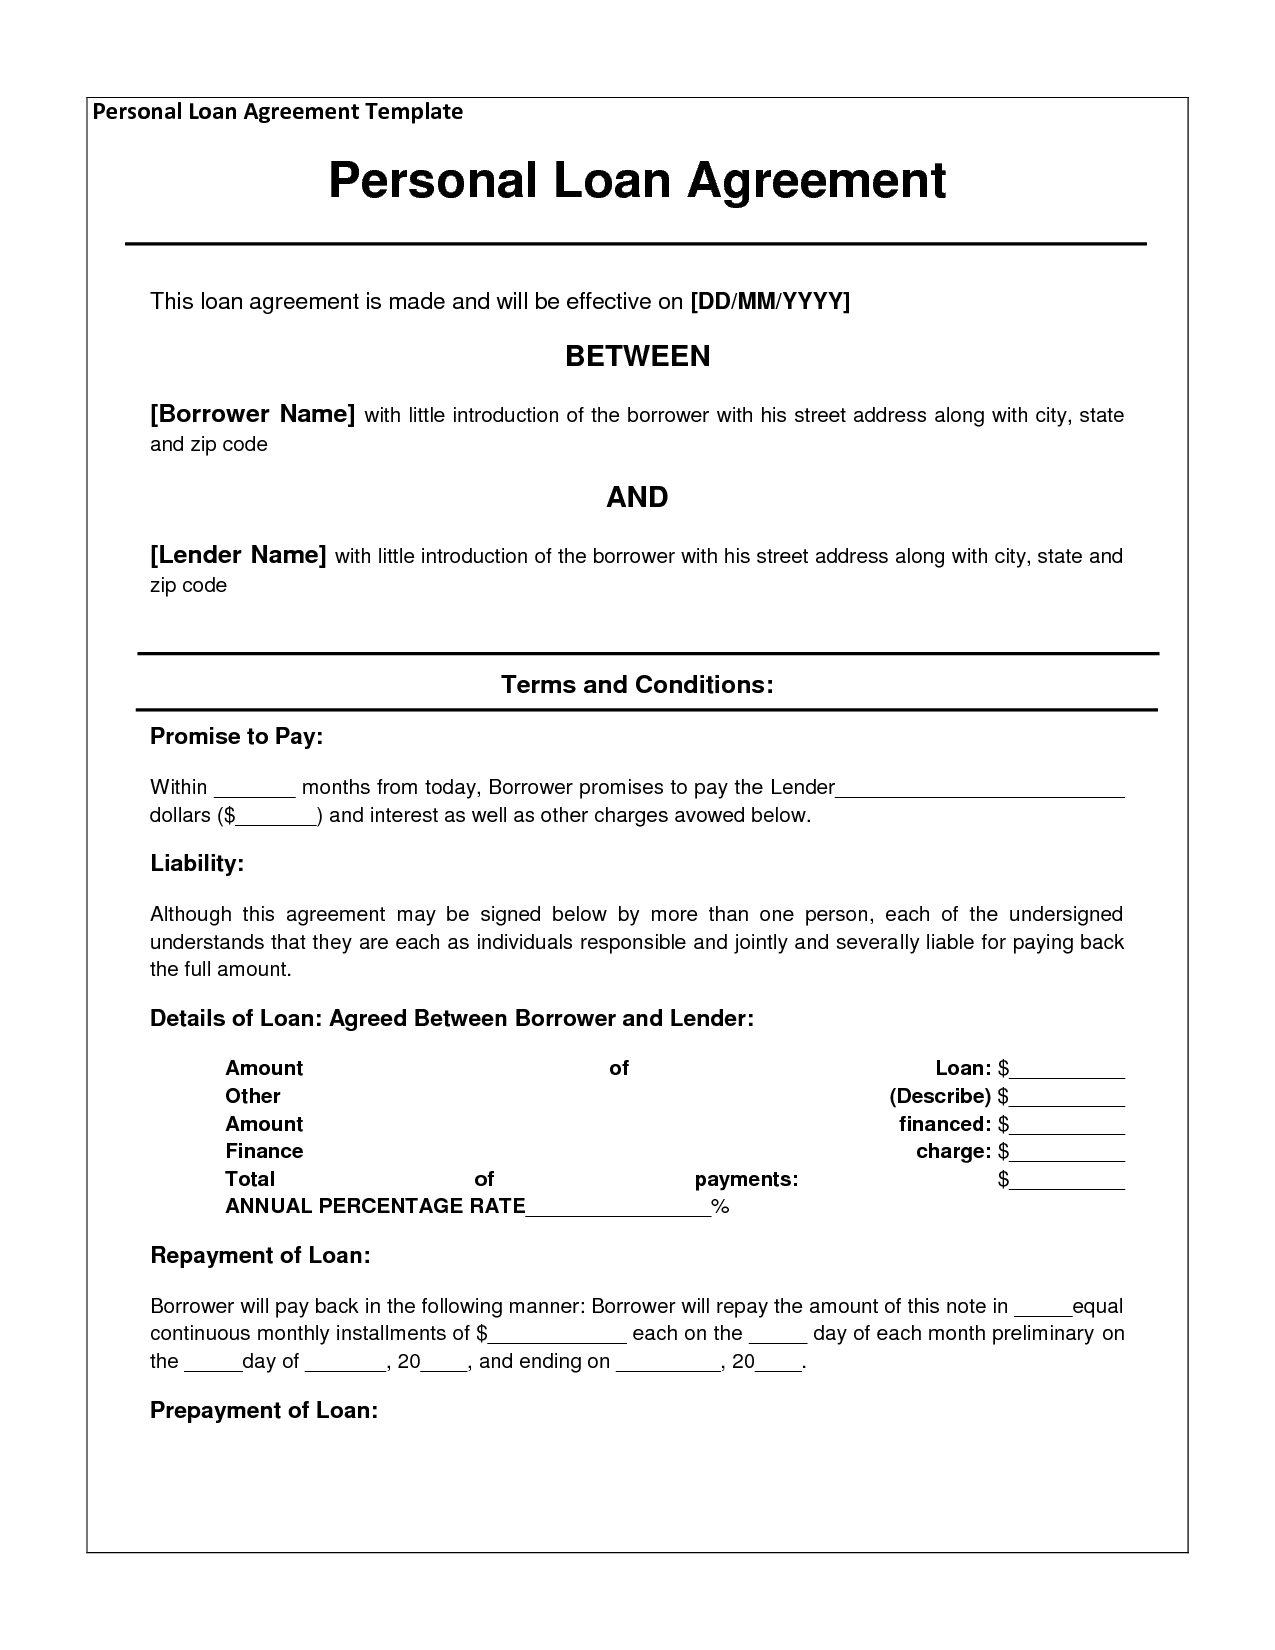 Free personal loan agreement form template 1000 Approved in 2 – Simple Loan Contract